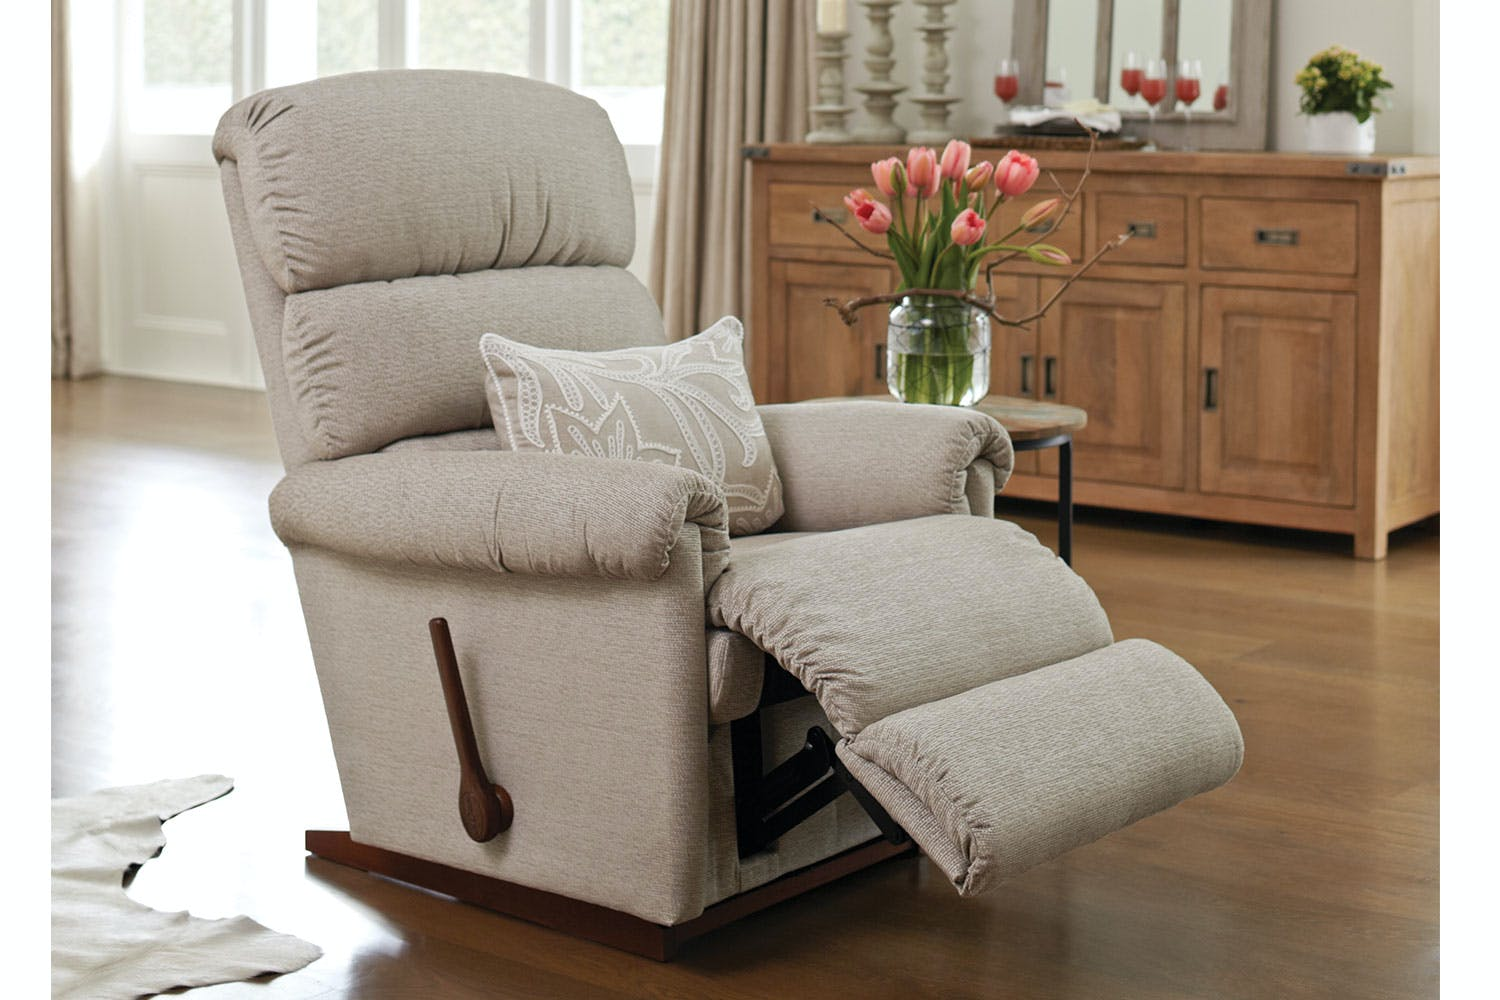 Rialto fabric recliner chair by la z boy harvey norman for Boys lounge chair